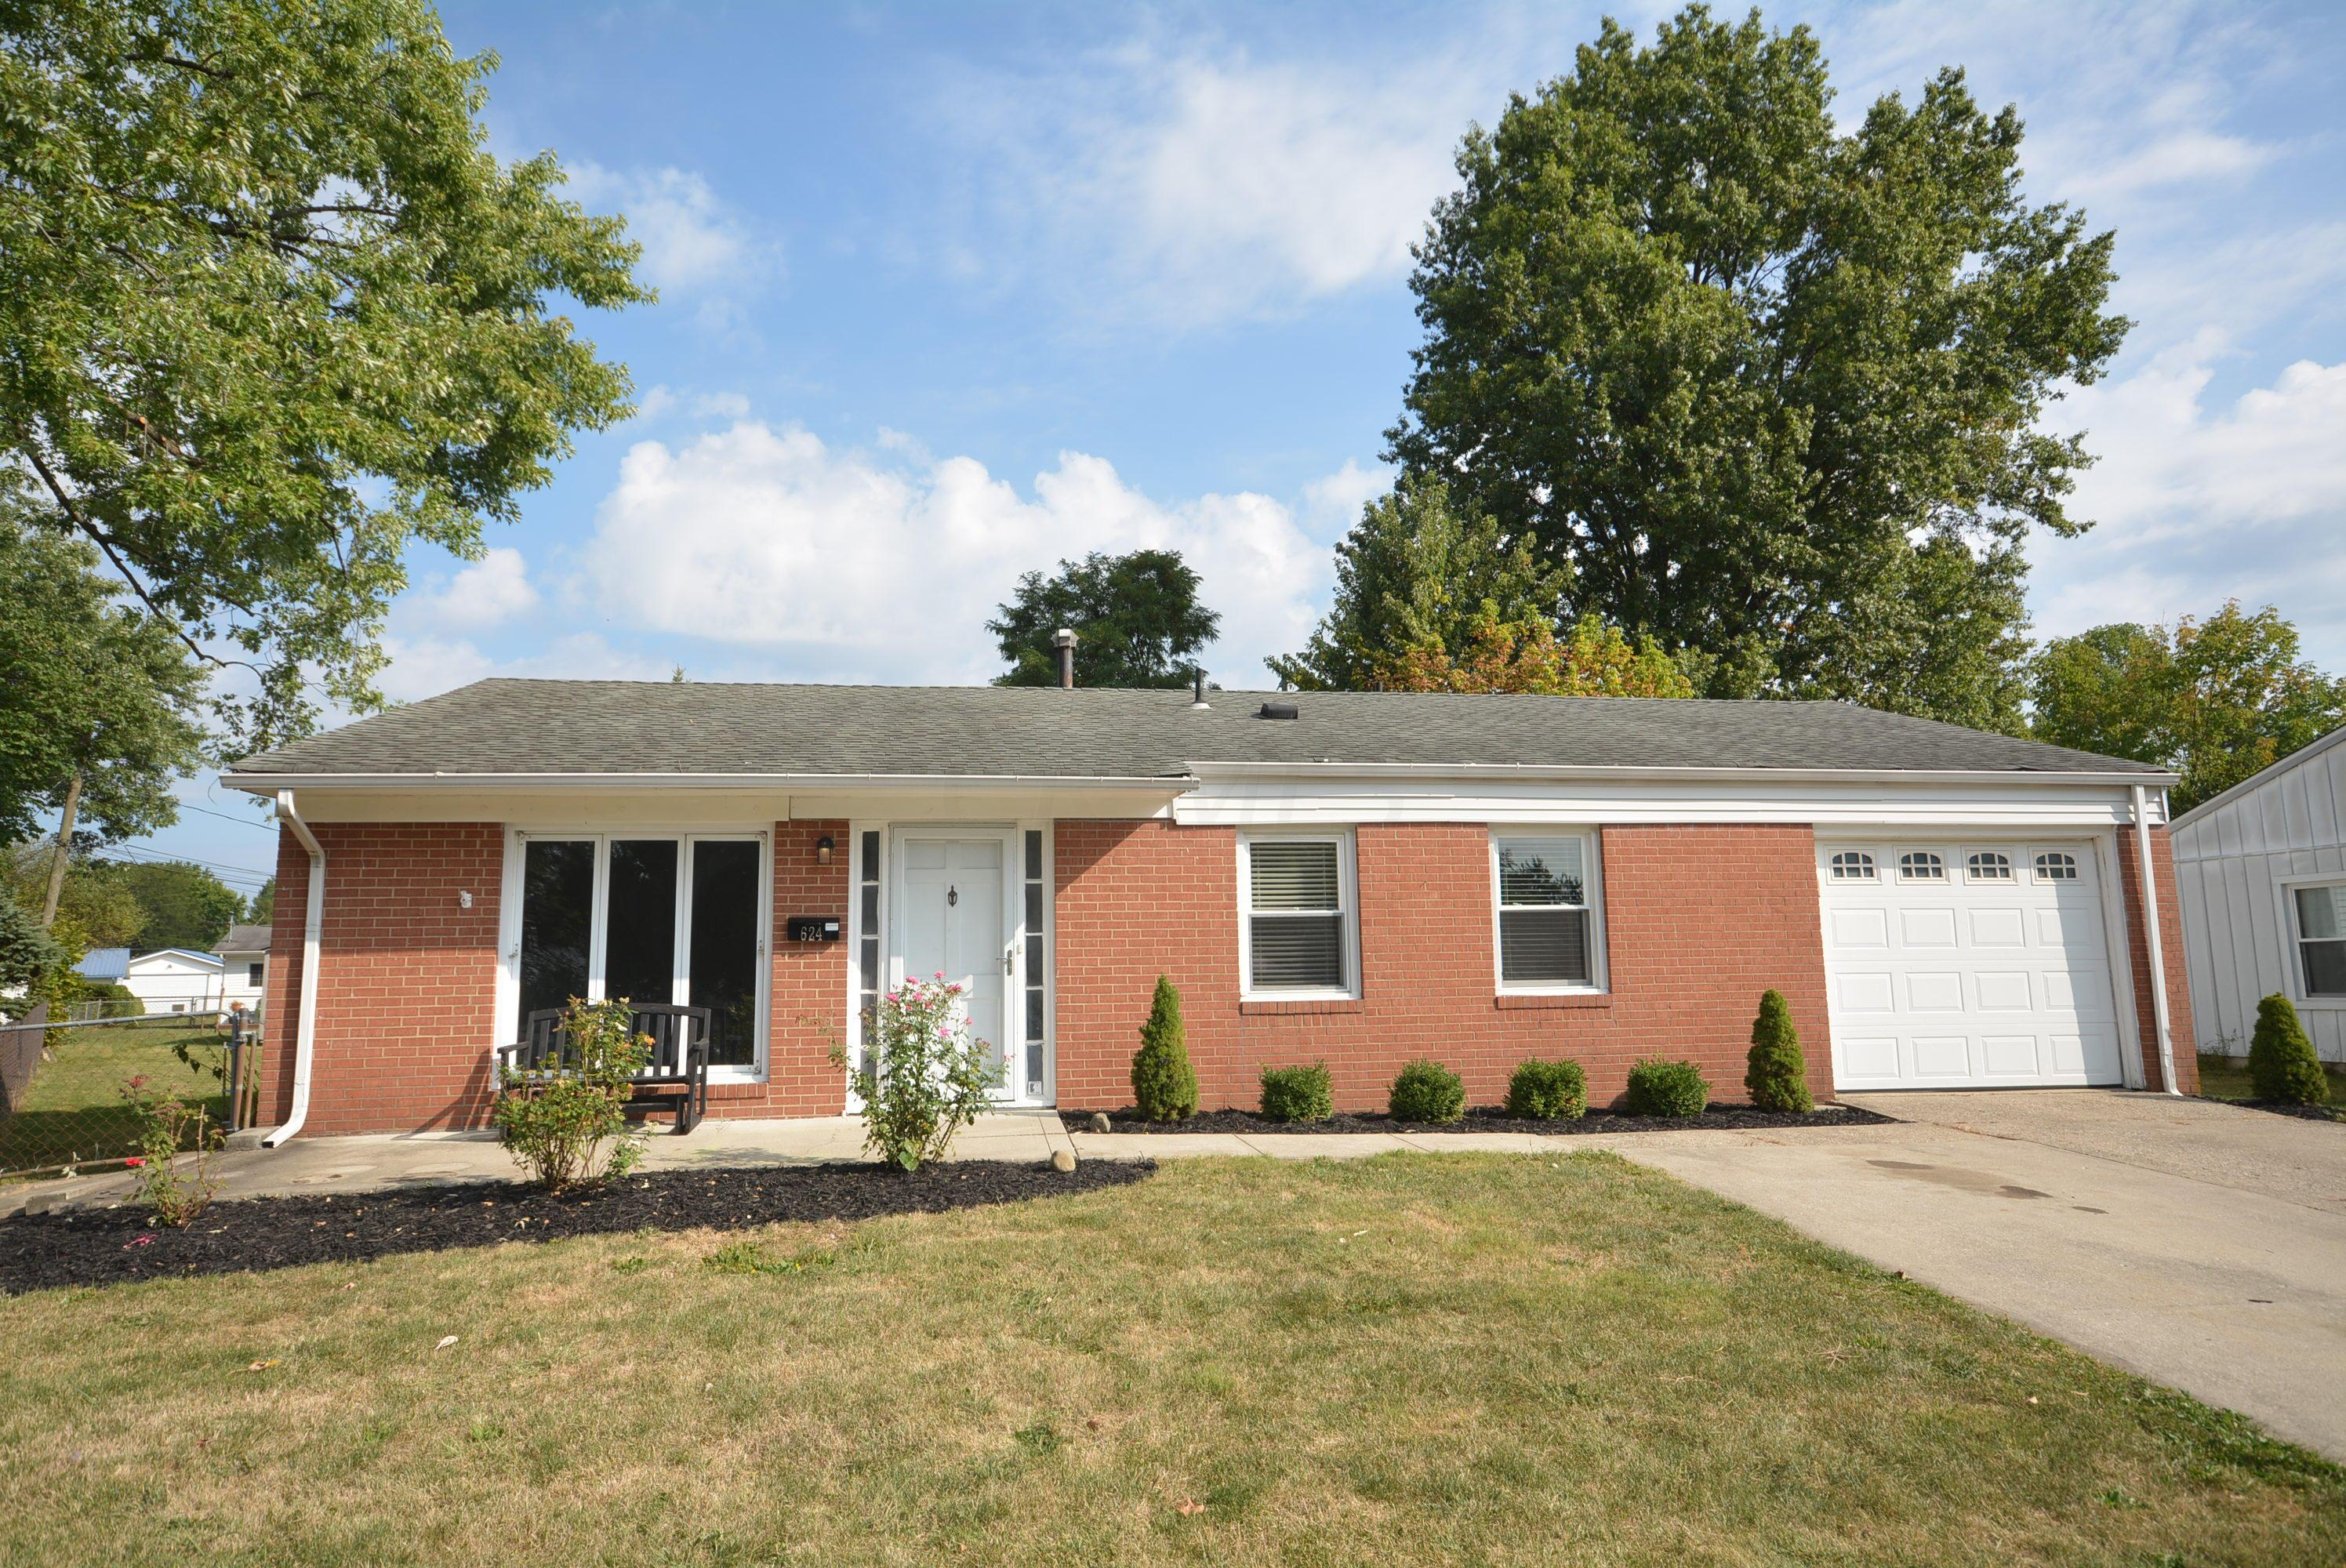 Photo of 624 King George Avenue, Gahanna, OH 43230